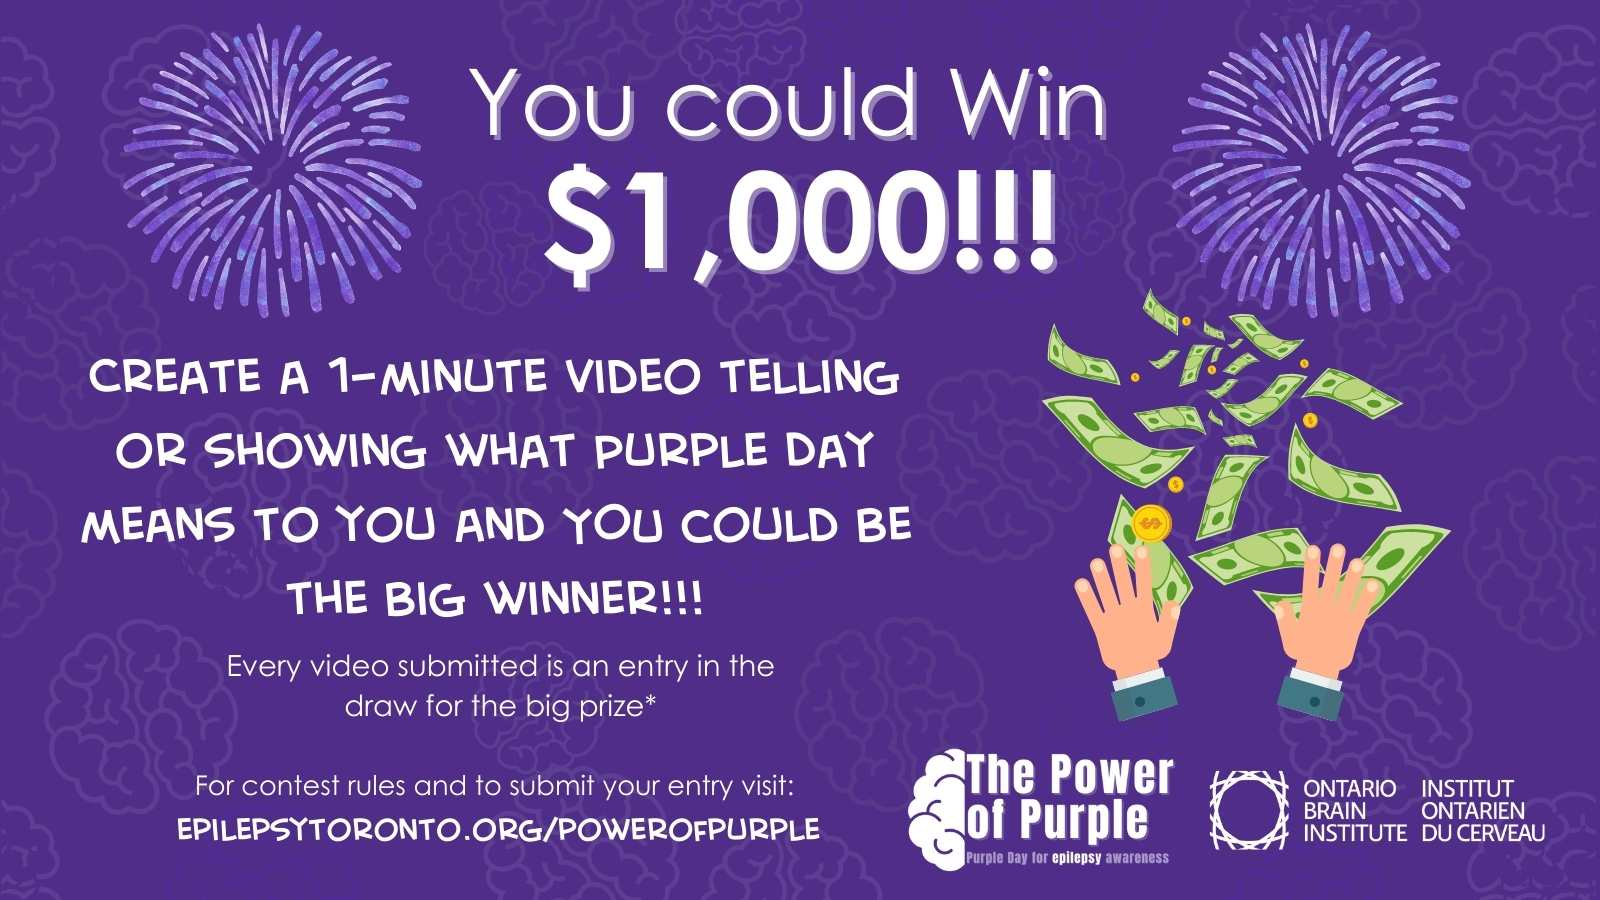 Power of Purple Video Contest